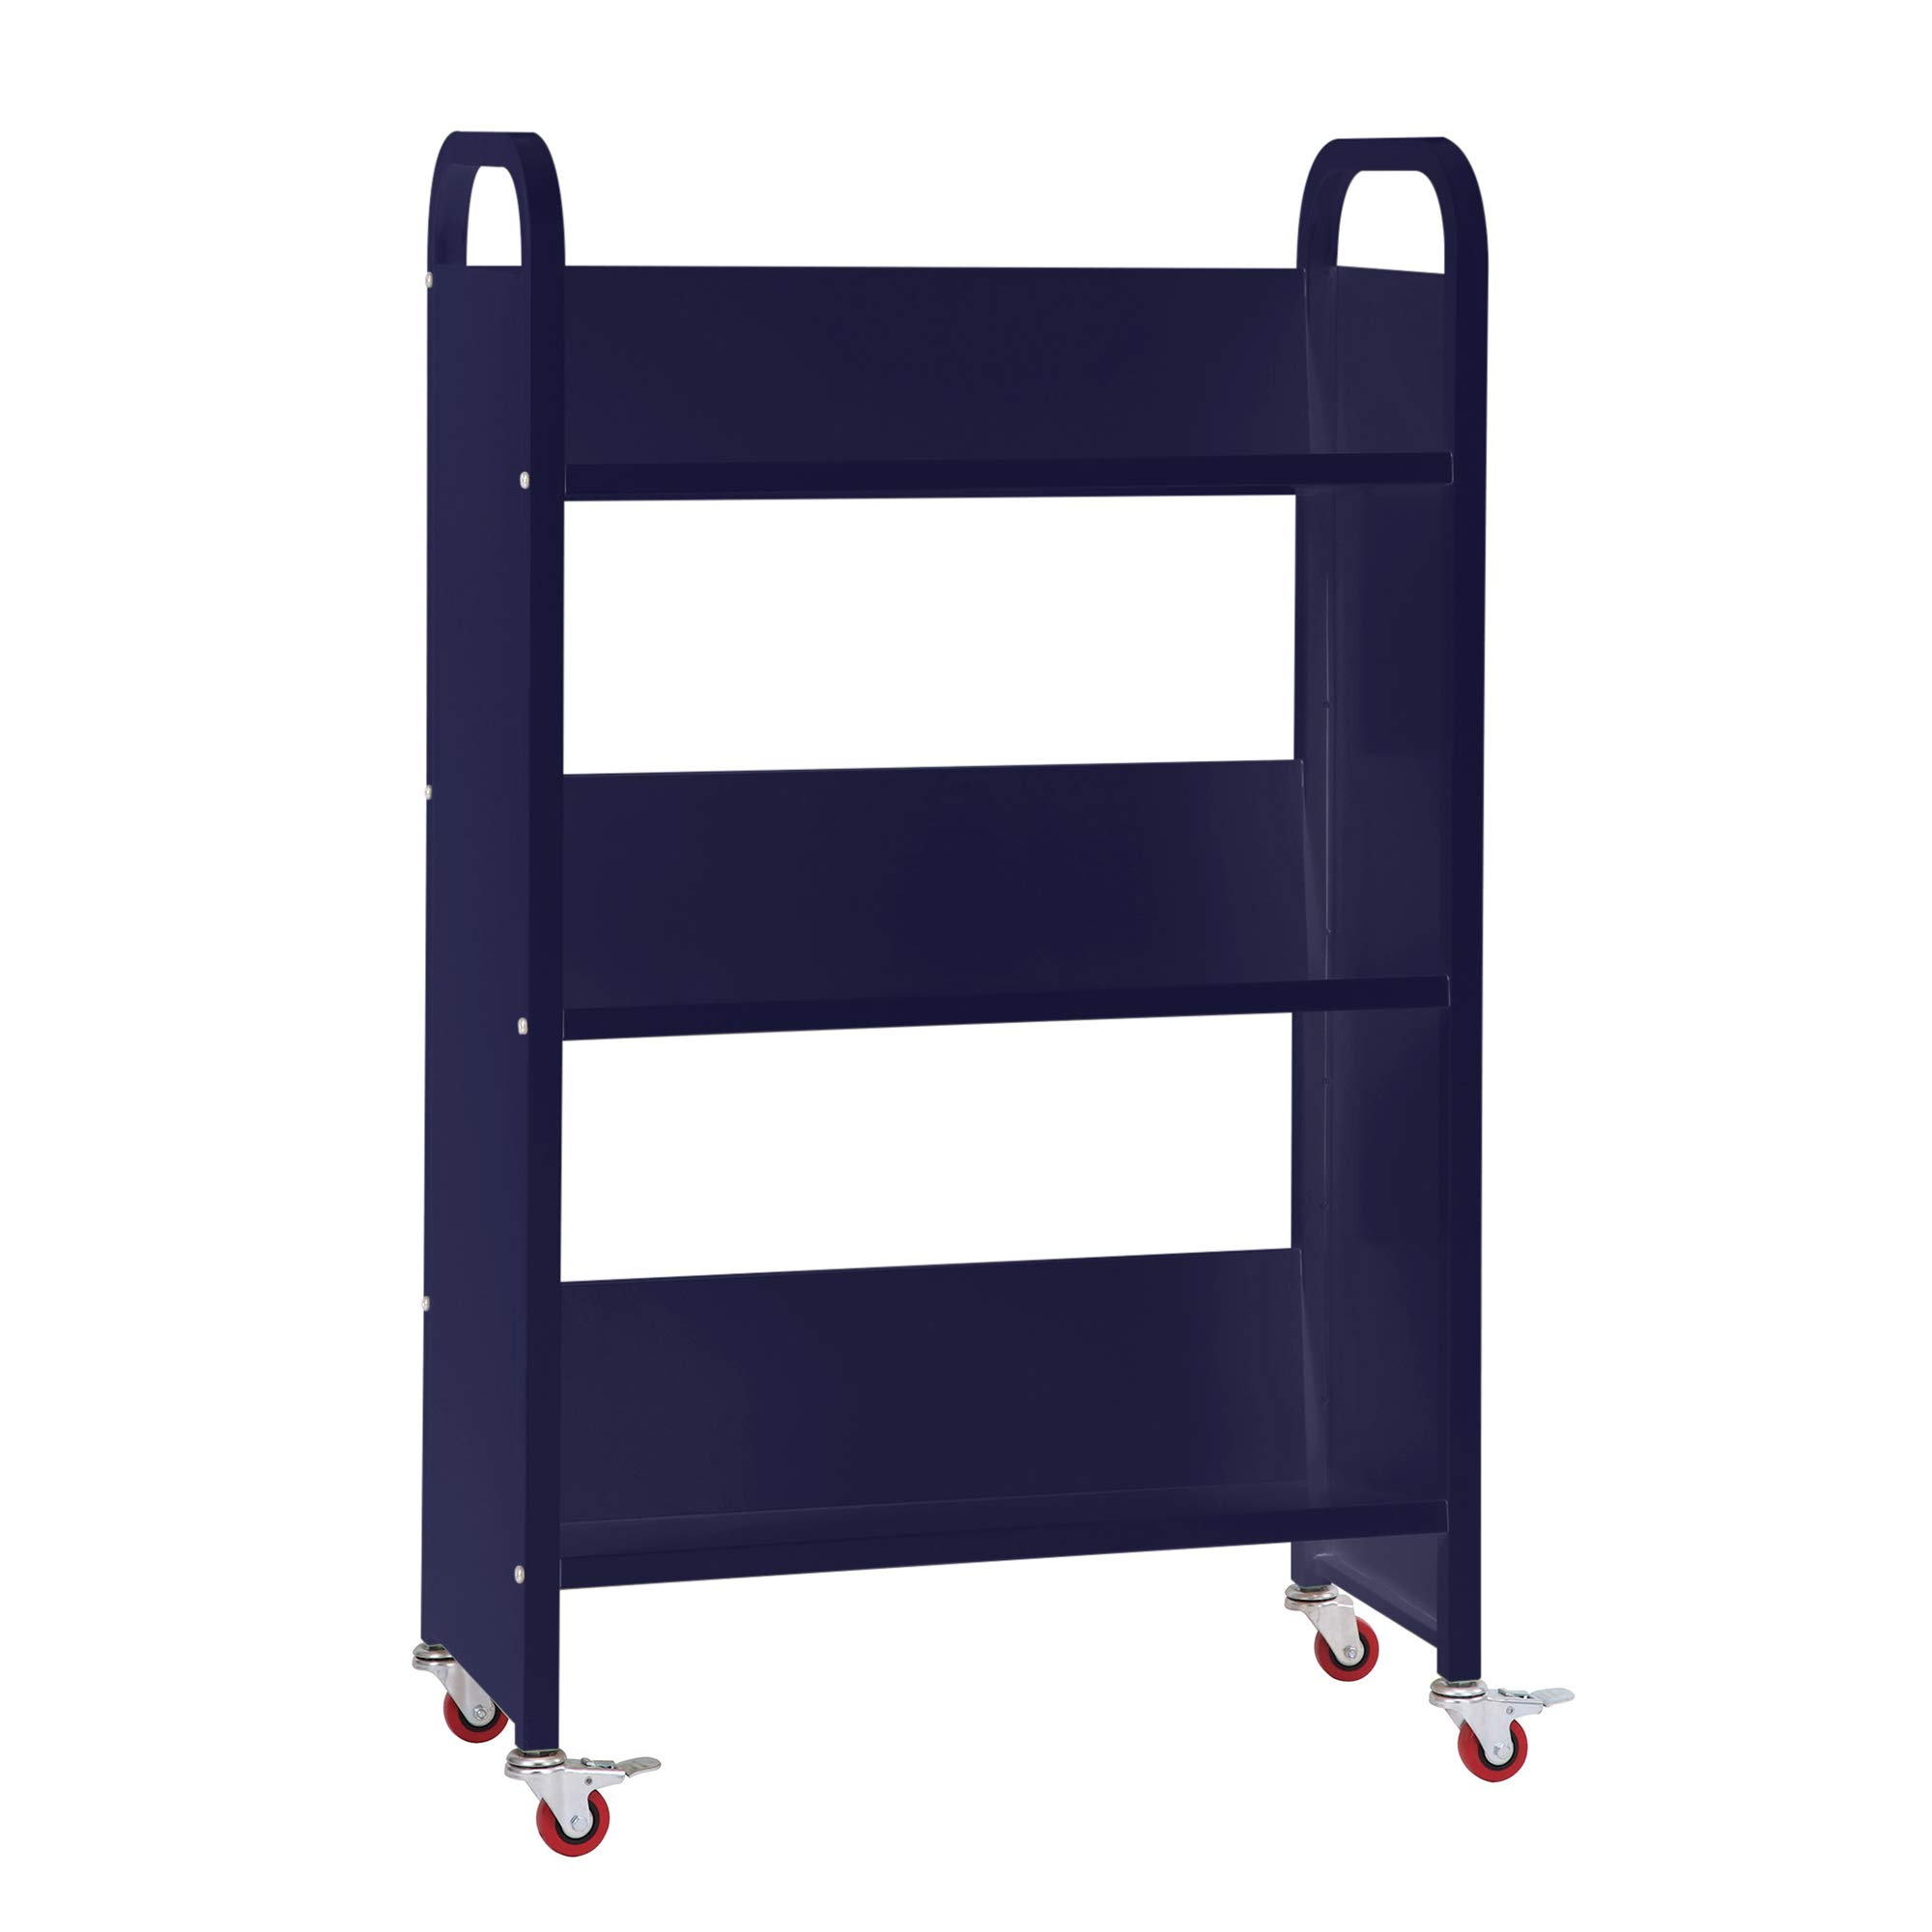 Guidecraft Heavy Duty Three-Shelf Narrow Book Truck - Dark Blue: Rolling Library Book Cart, School Furniture and Office Supply